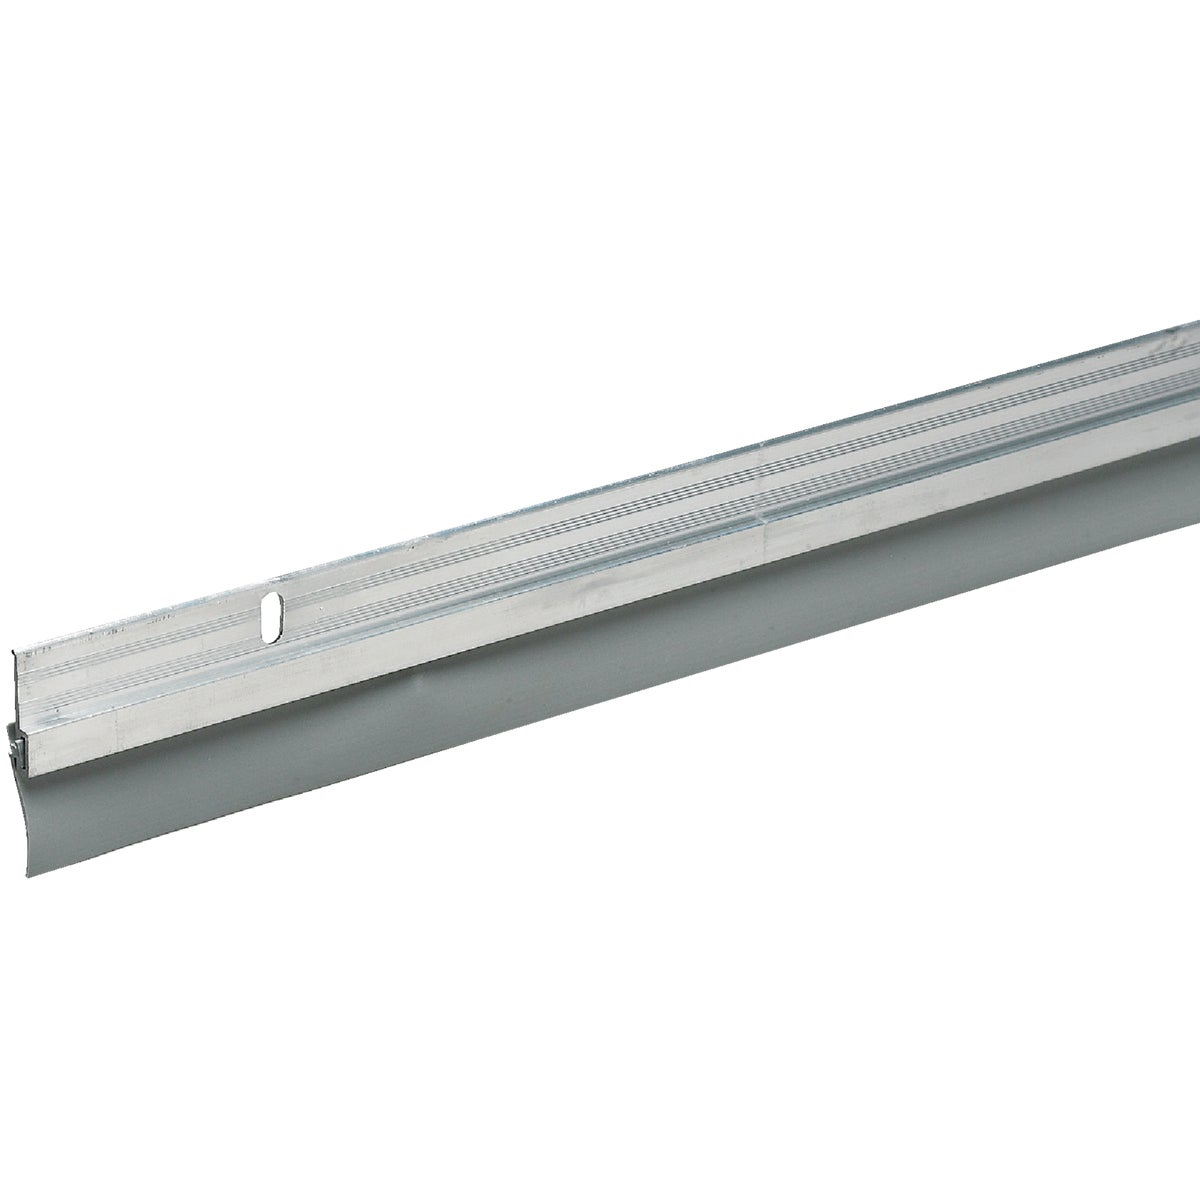 1-1/2X36 SLVR DR BOTTOM - A54/36HDI by Thermwell Prods Co